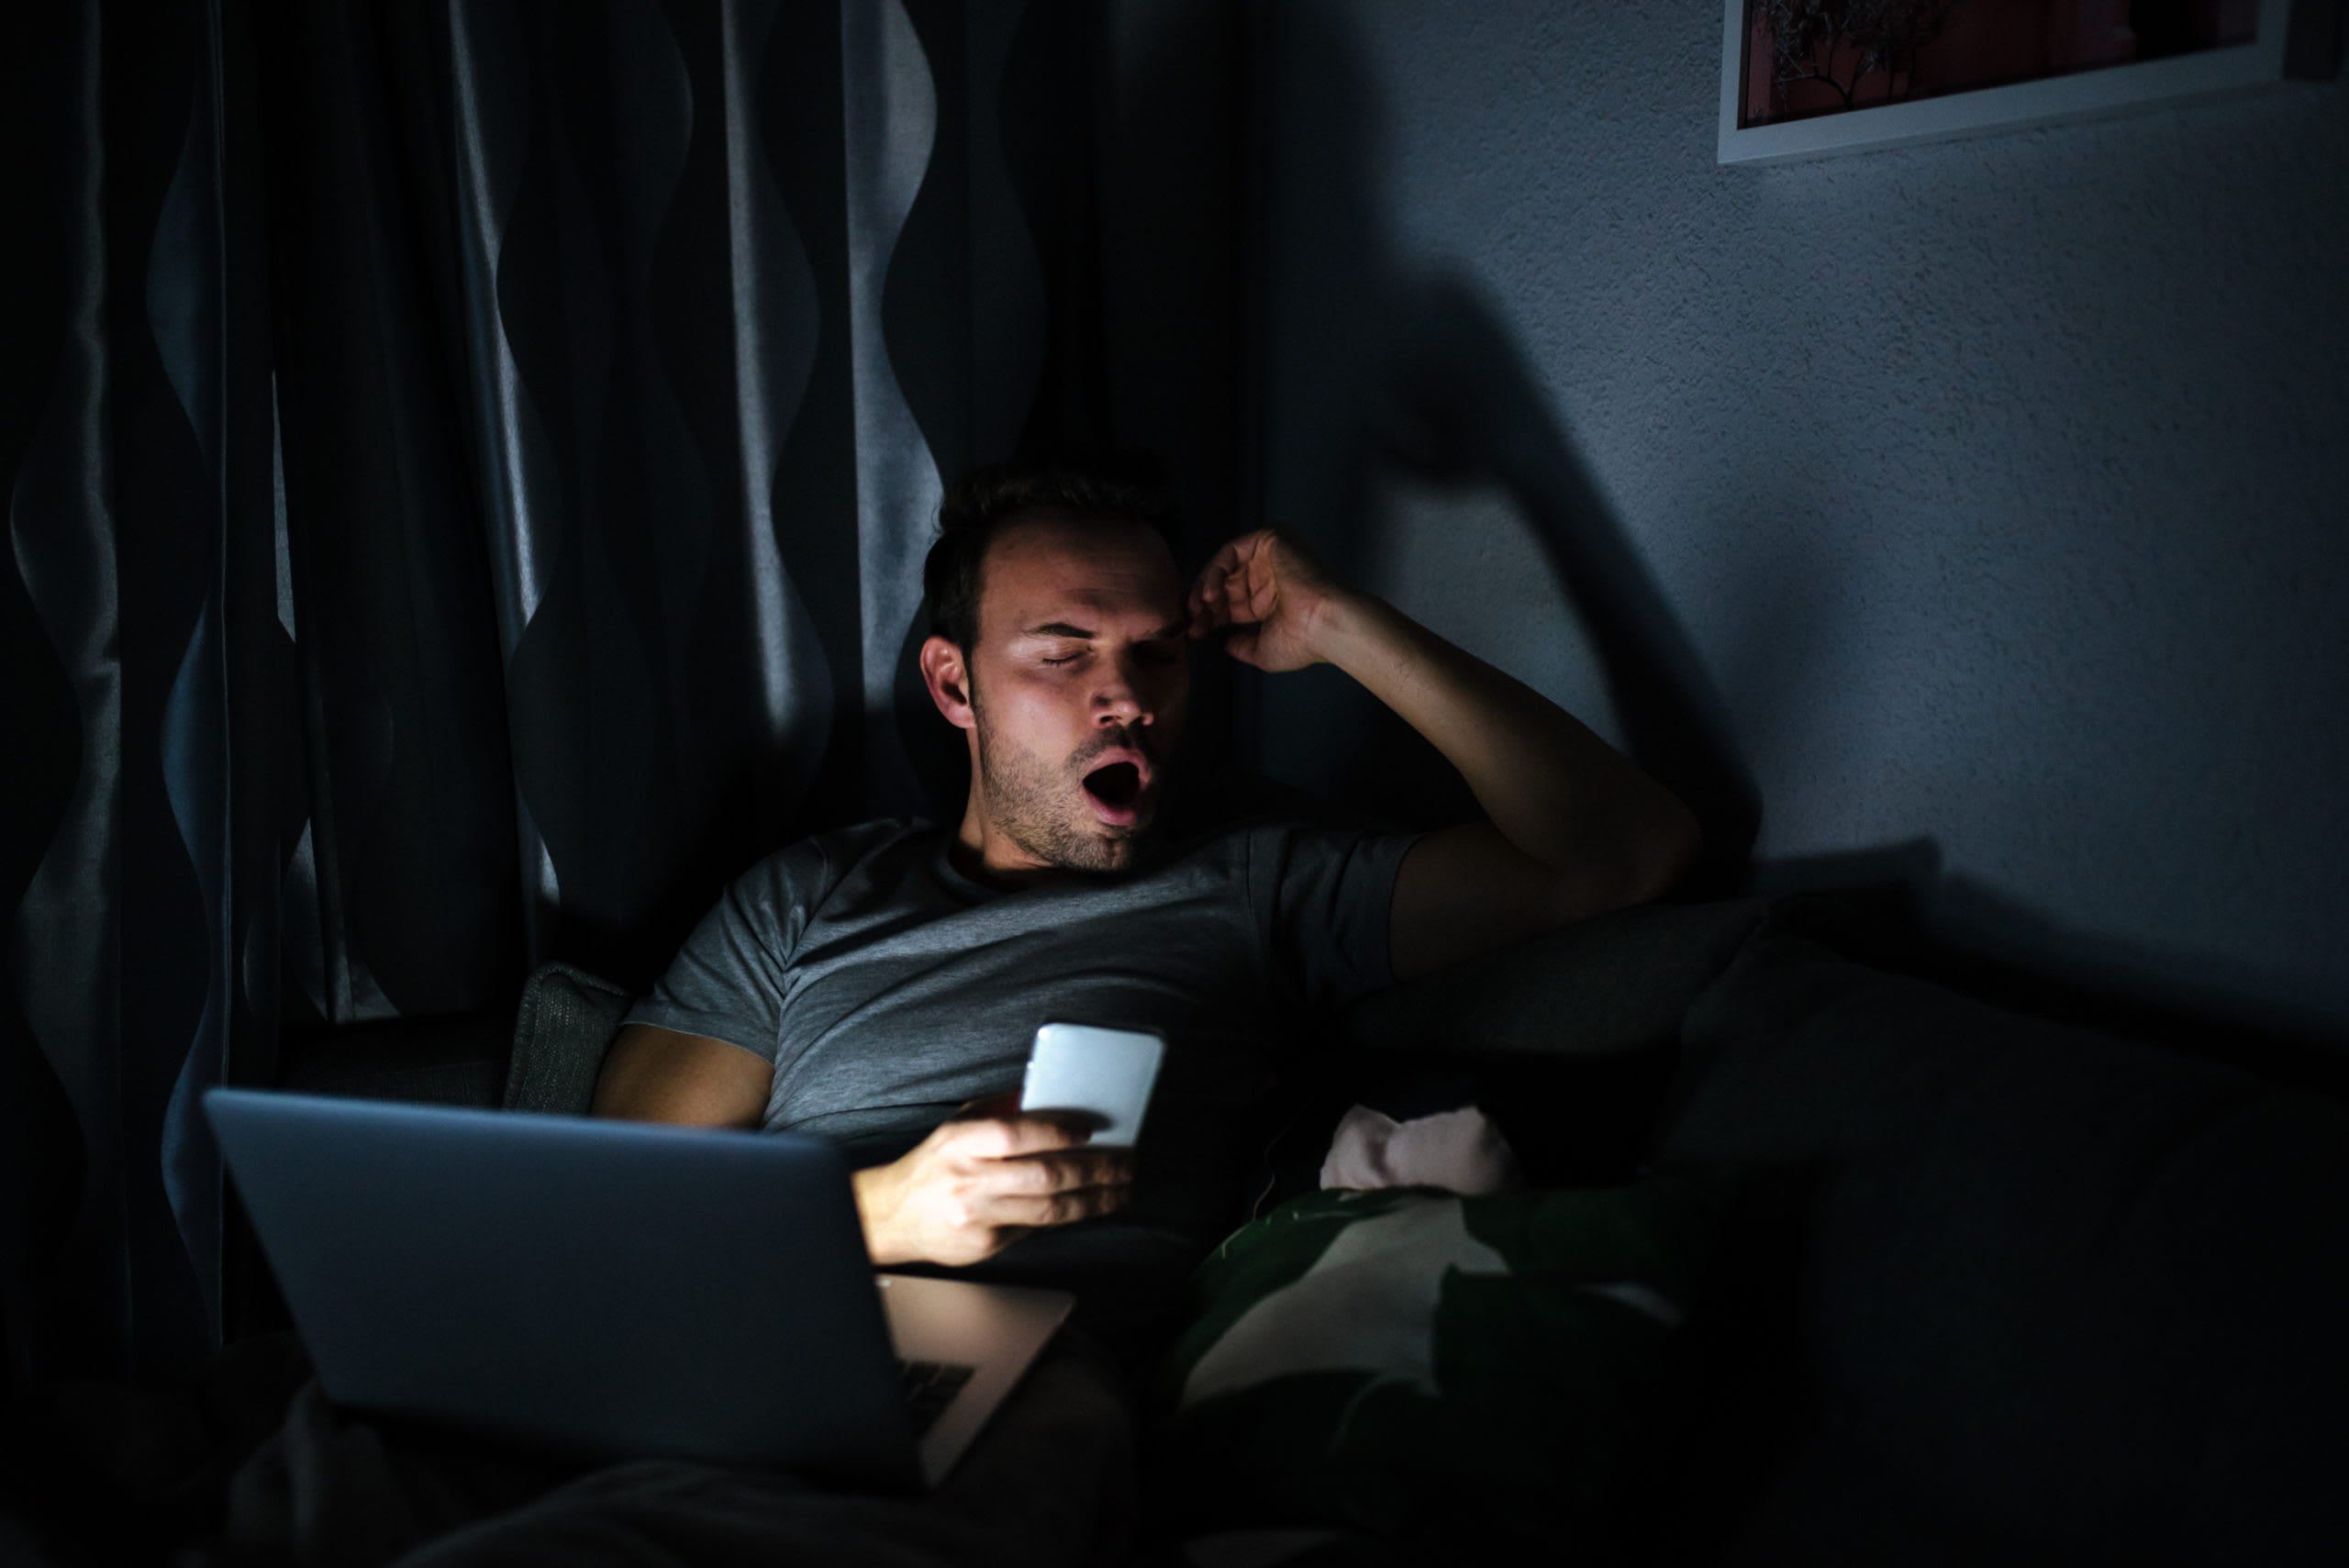 Man sitting with a phone screen and computer getting tired